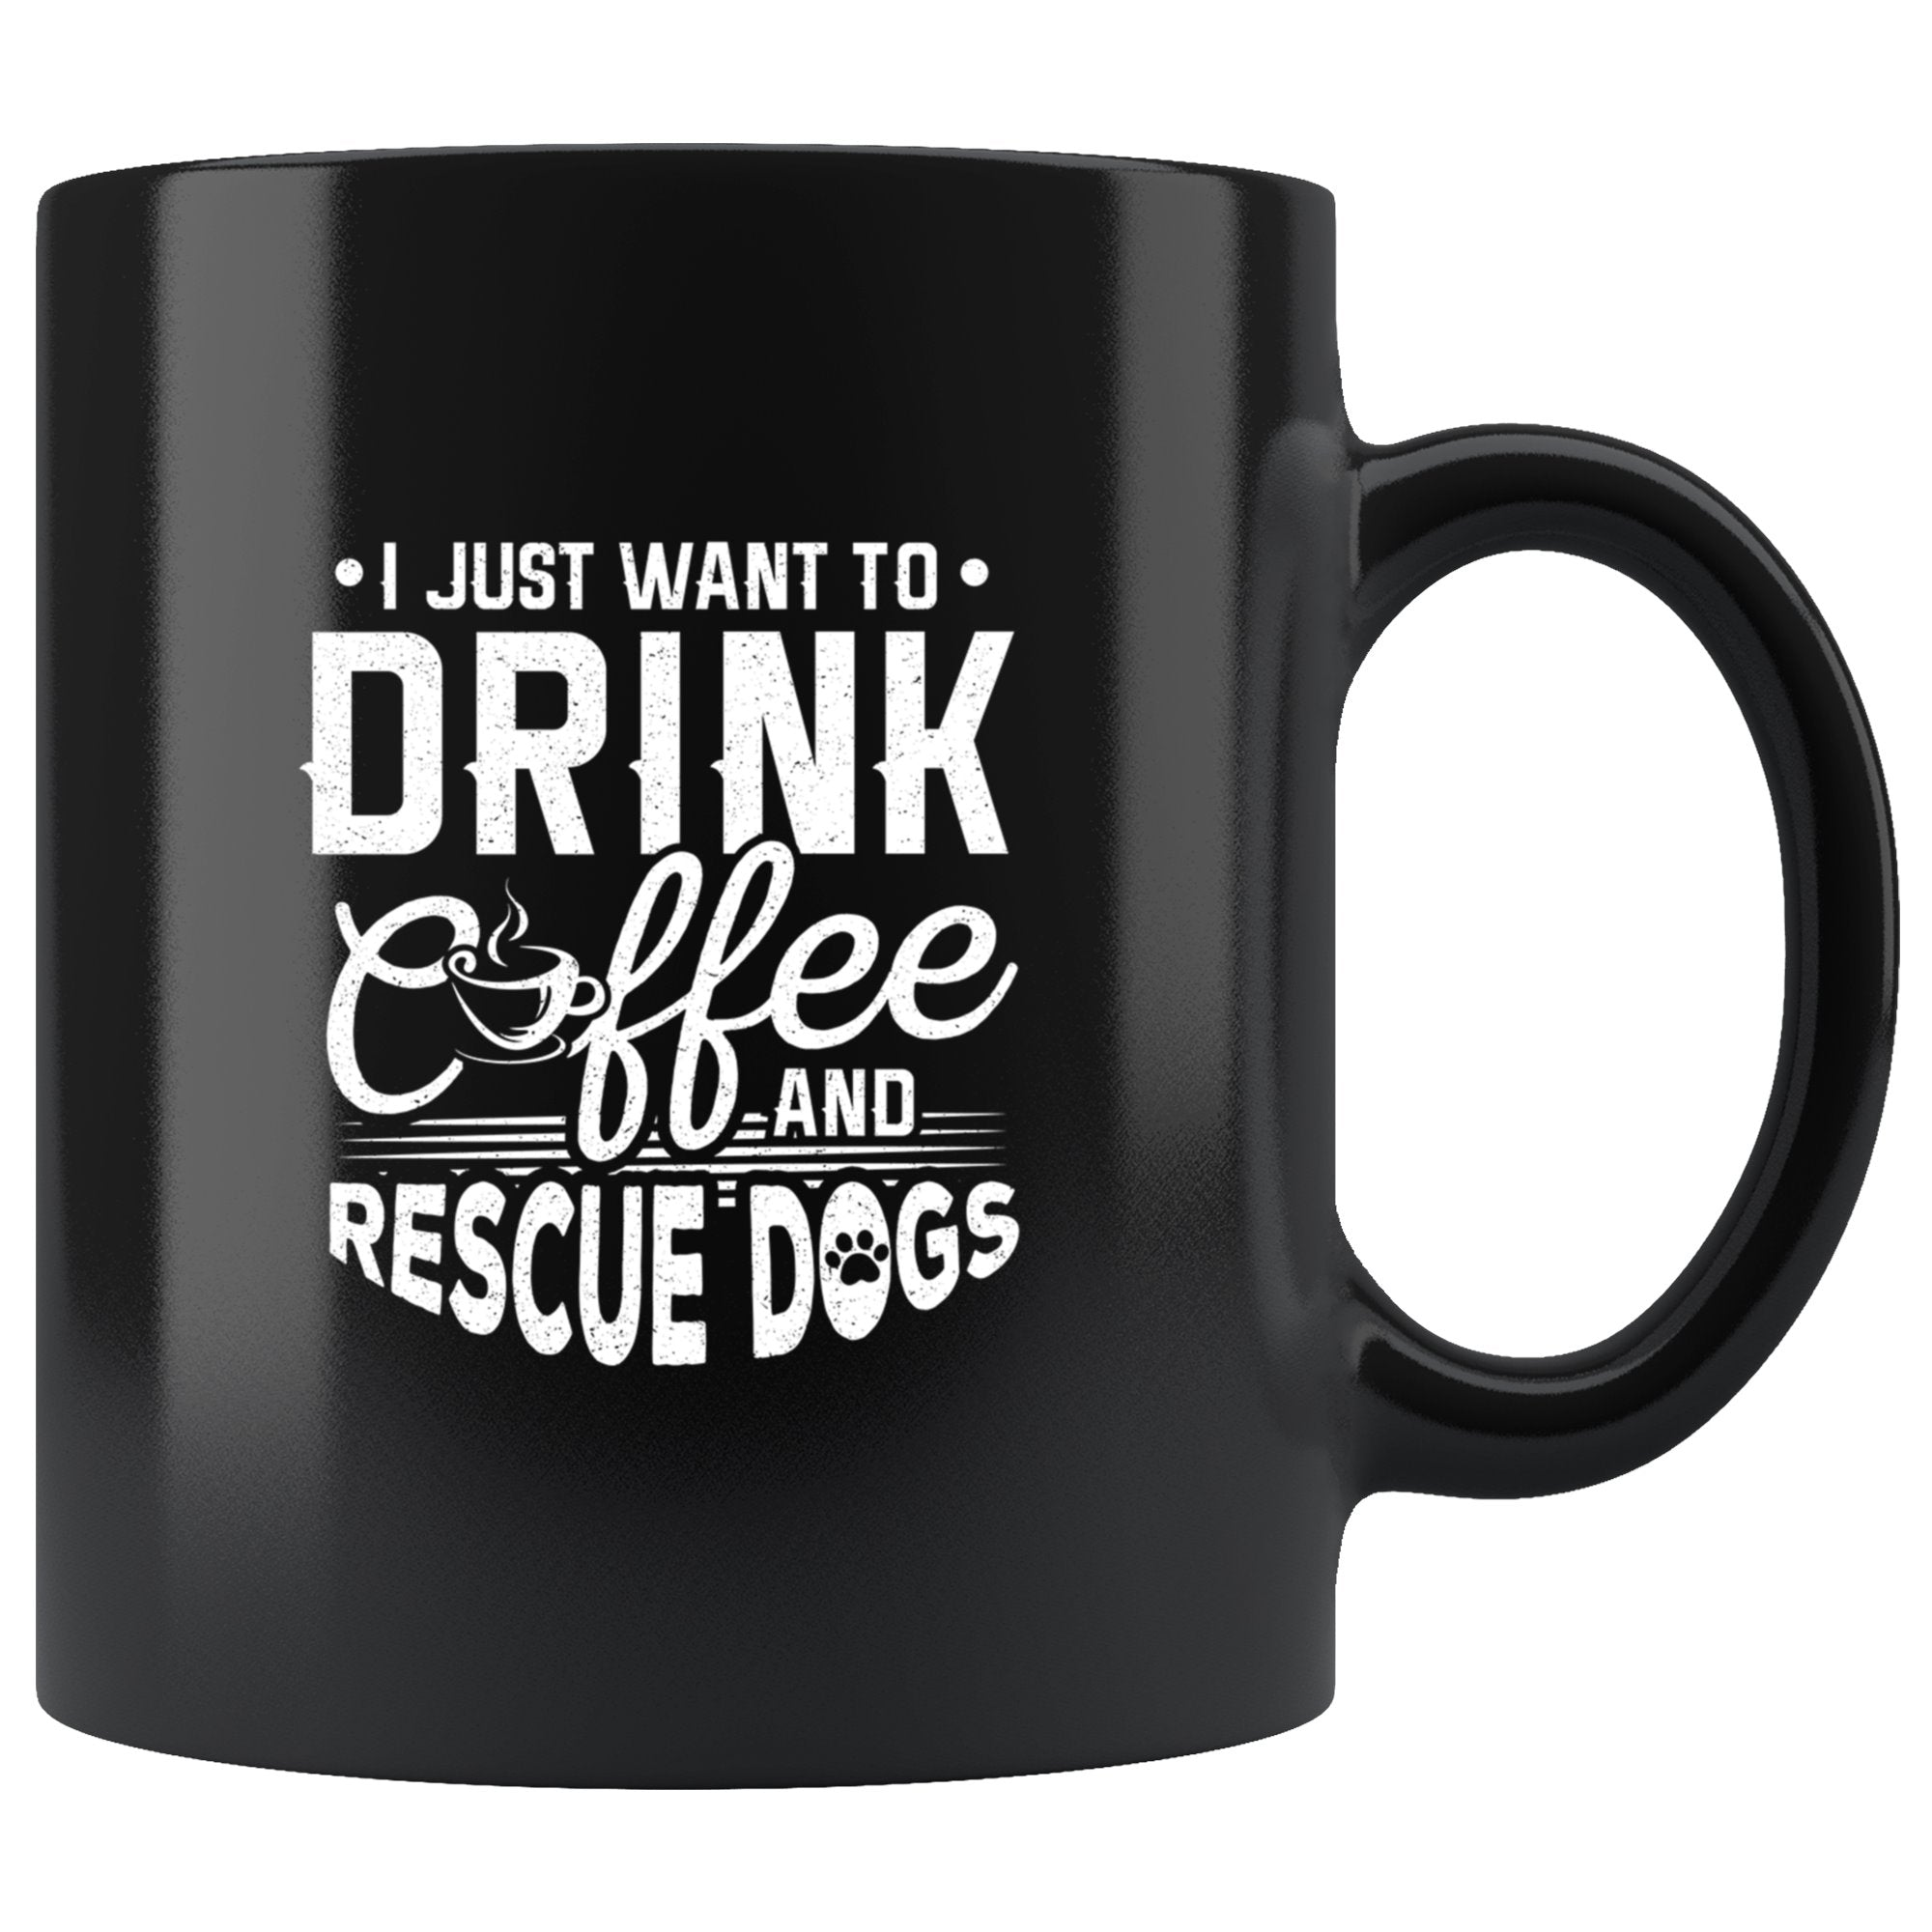 I Just Want To Drink Coffee and Rescue Dogs Coffee Mug